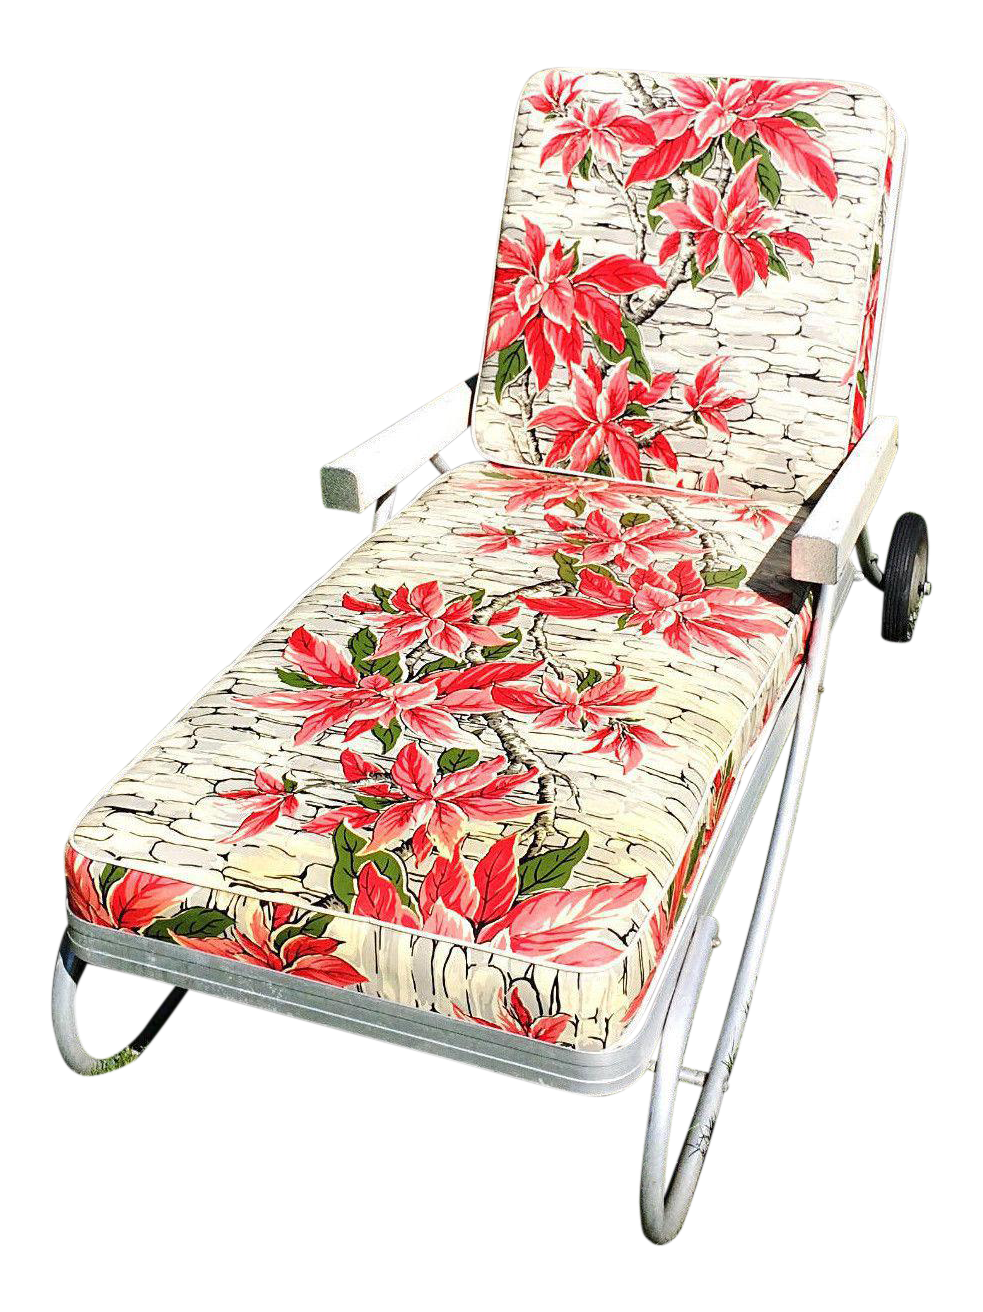 Chaise Lounge Patio Furniture Repair: Vintage Bunting Aluminum Chaise Lounge Patio Chair